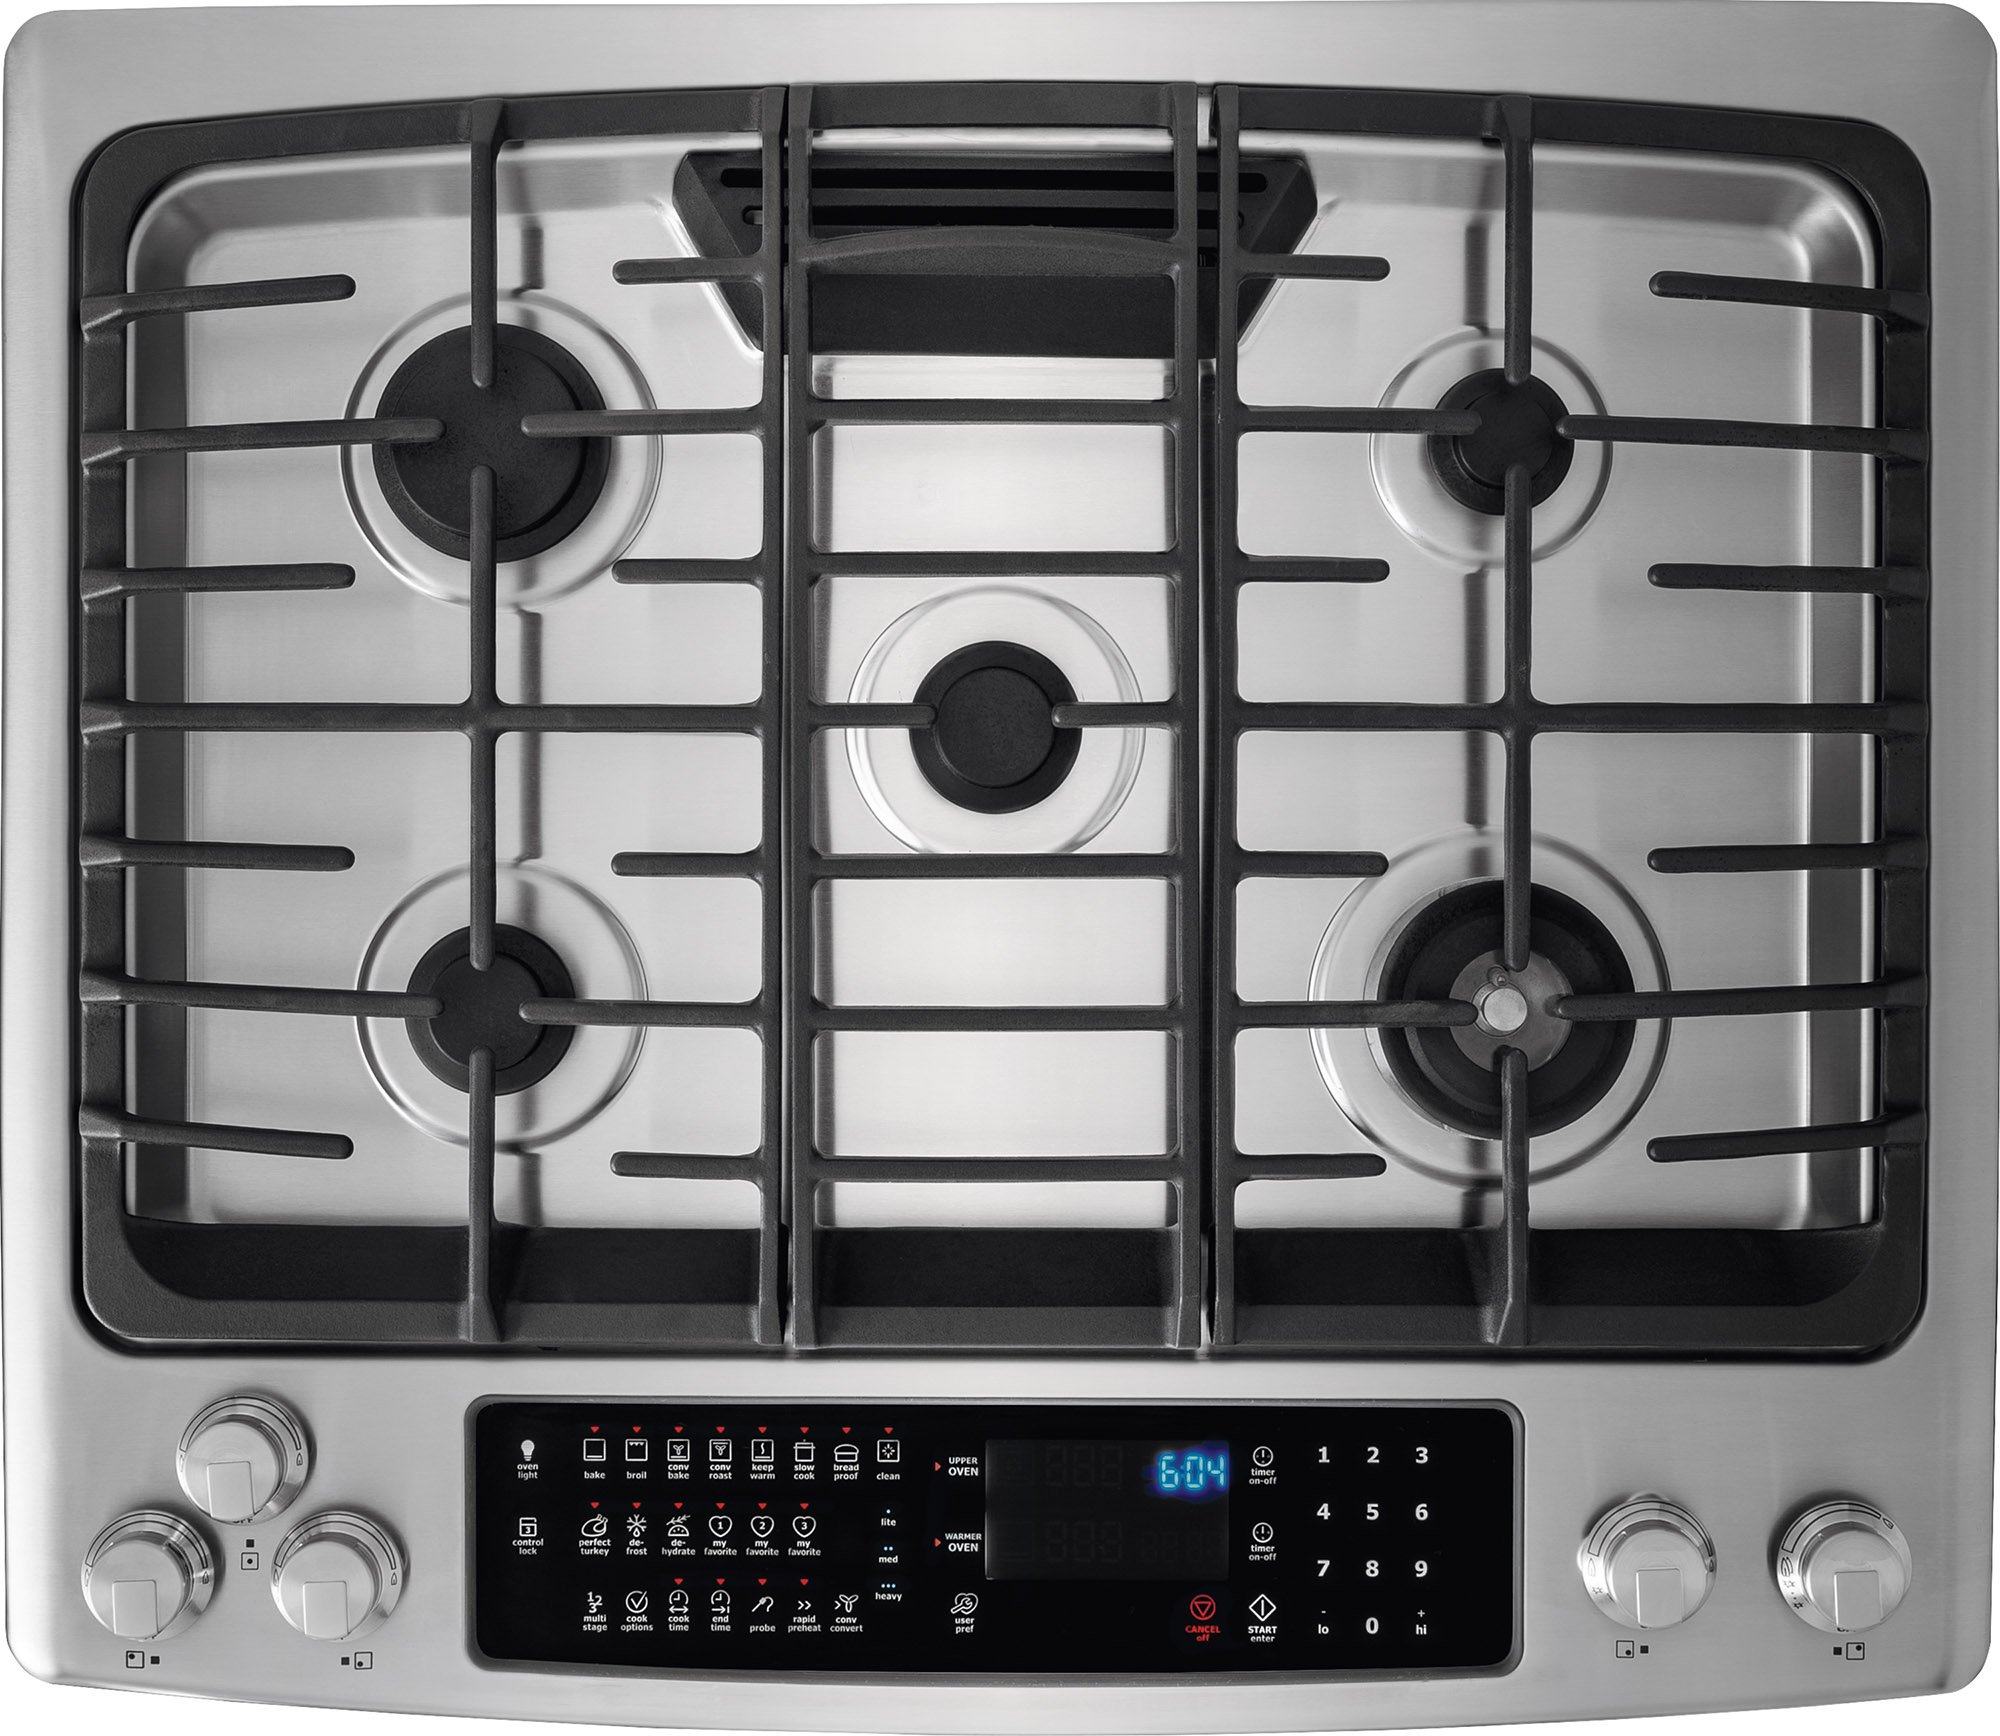 Electrolux EW30GS80RS 30'' Star K ADA Compliant Gas Slide-In Range Oven with 5 Sealed Burners 4.5 cu. ft. Oven Capacity Continuous Grates and Luxury-Glide Oven Rack in Stainless by Electrolux (Image #2)